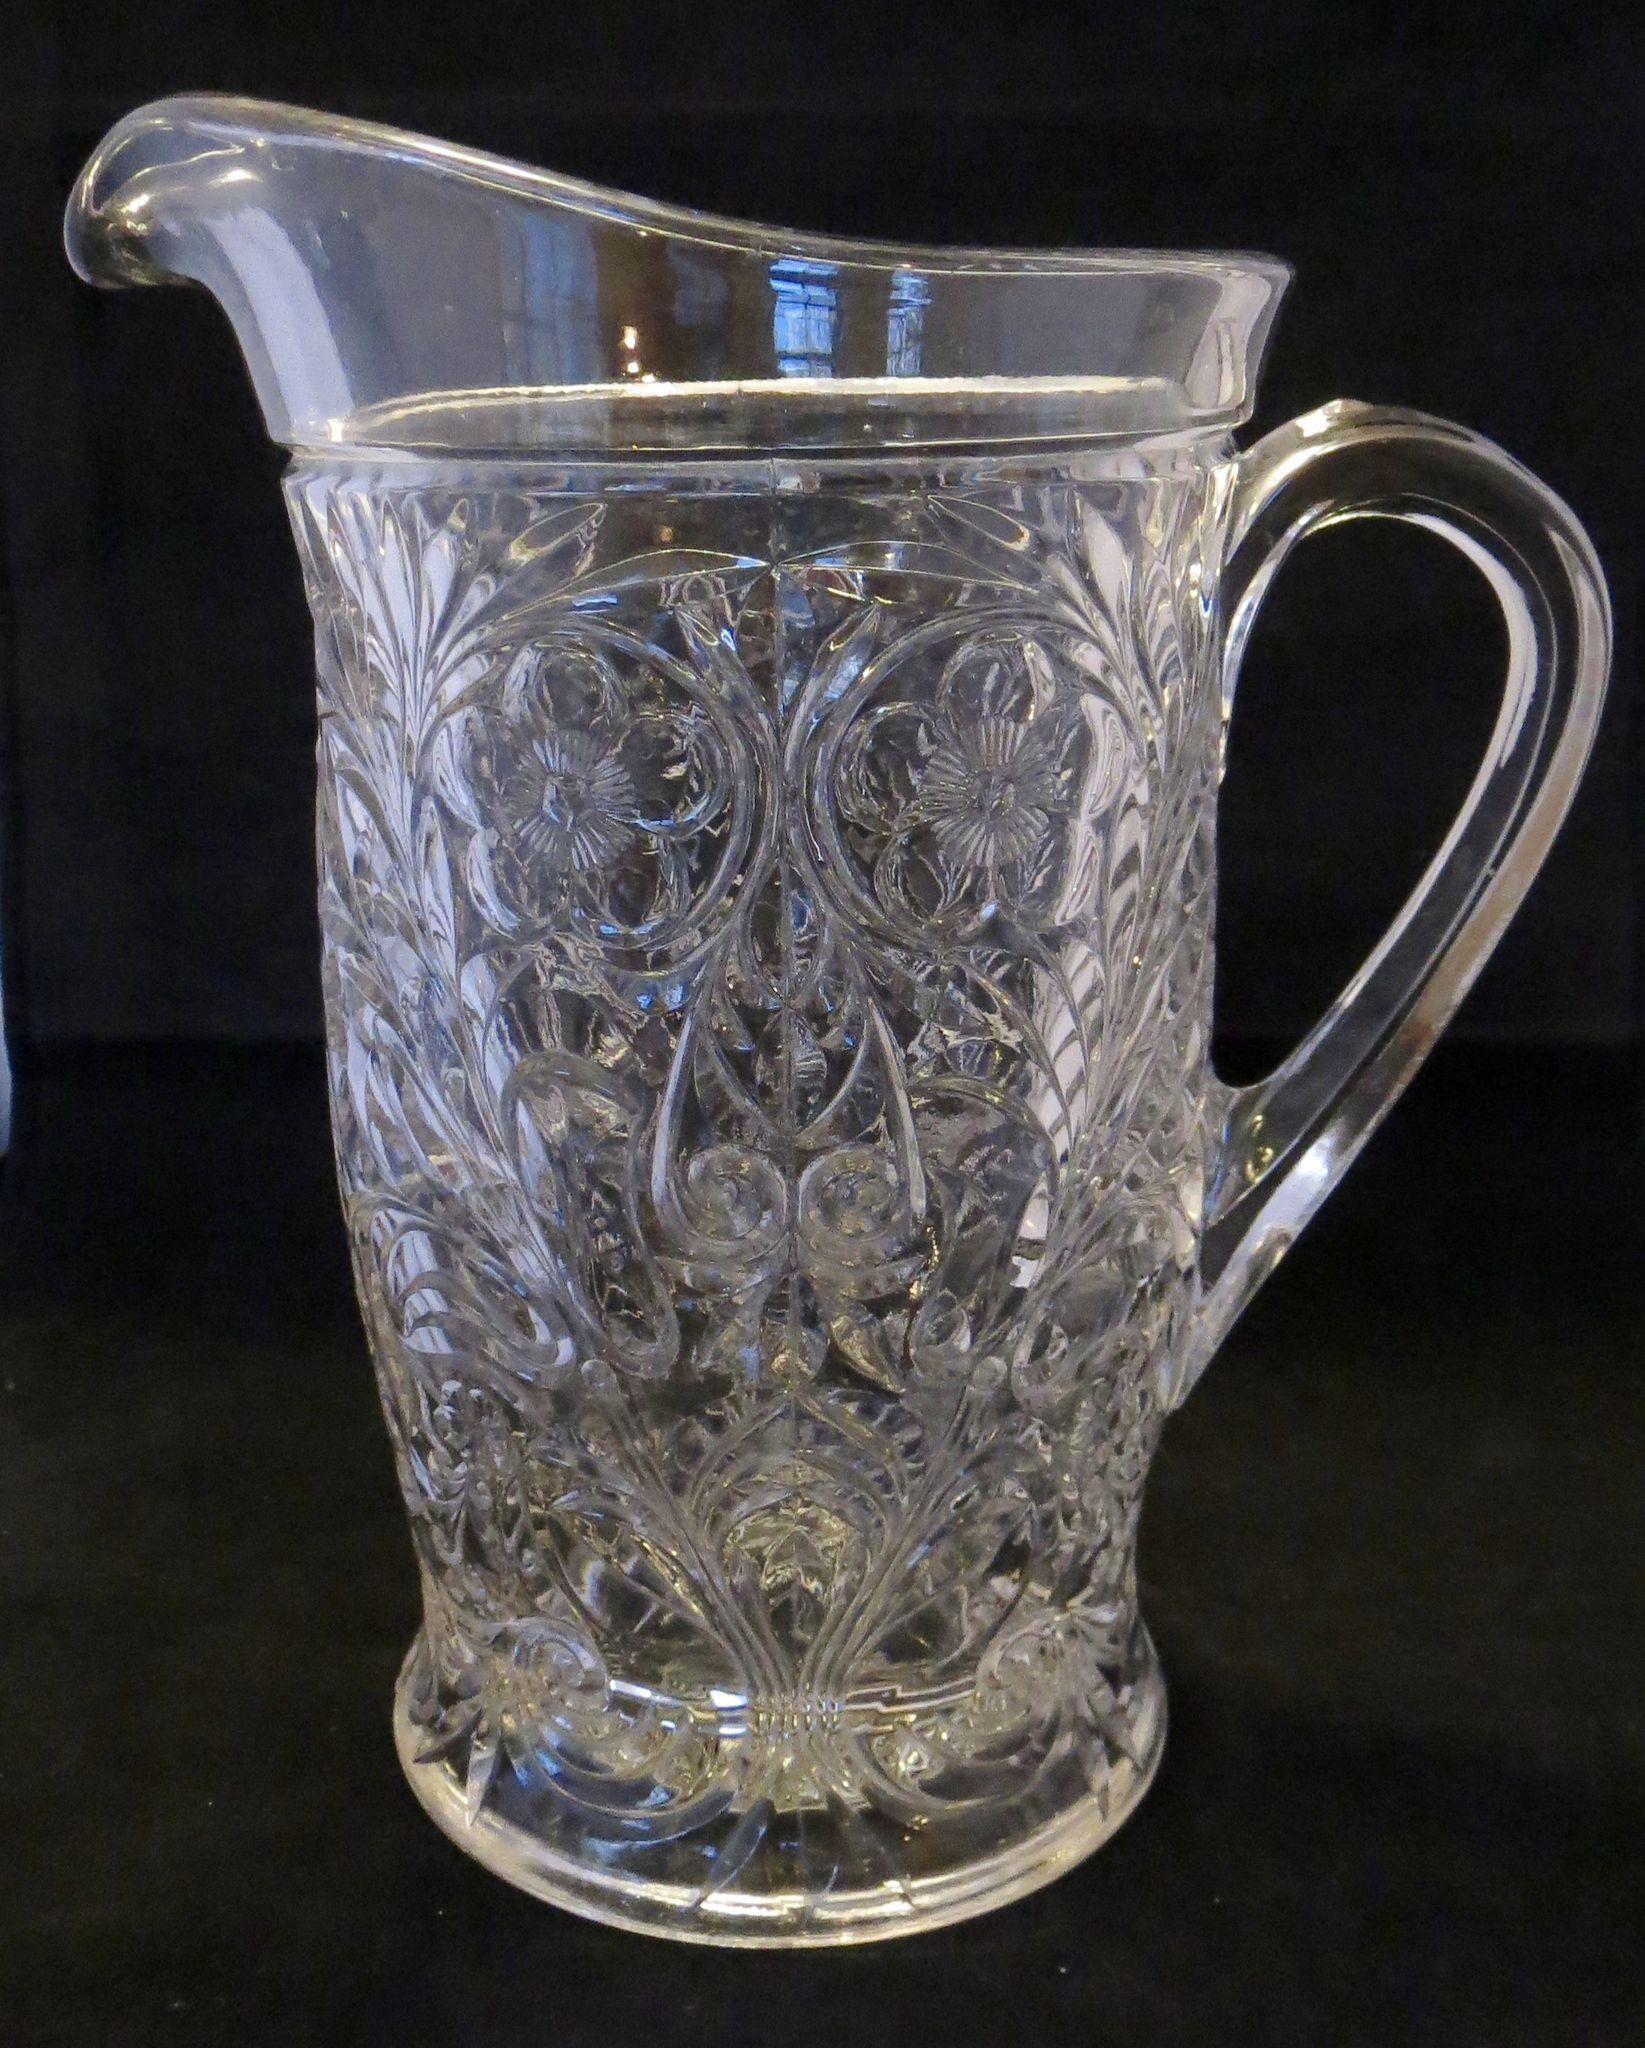 McKee Rock Crystal Tankard Pitcher - Depression Glass Pitcher